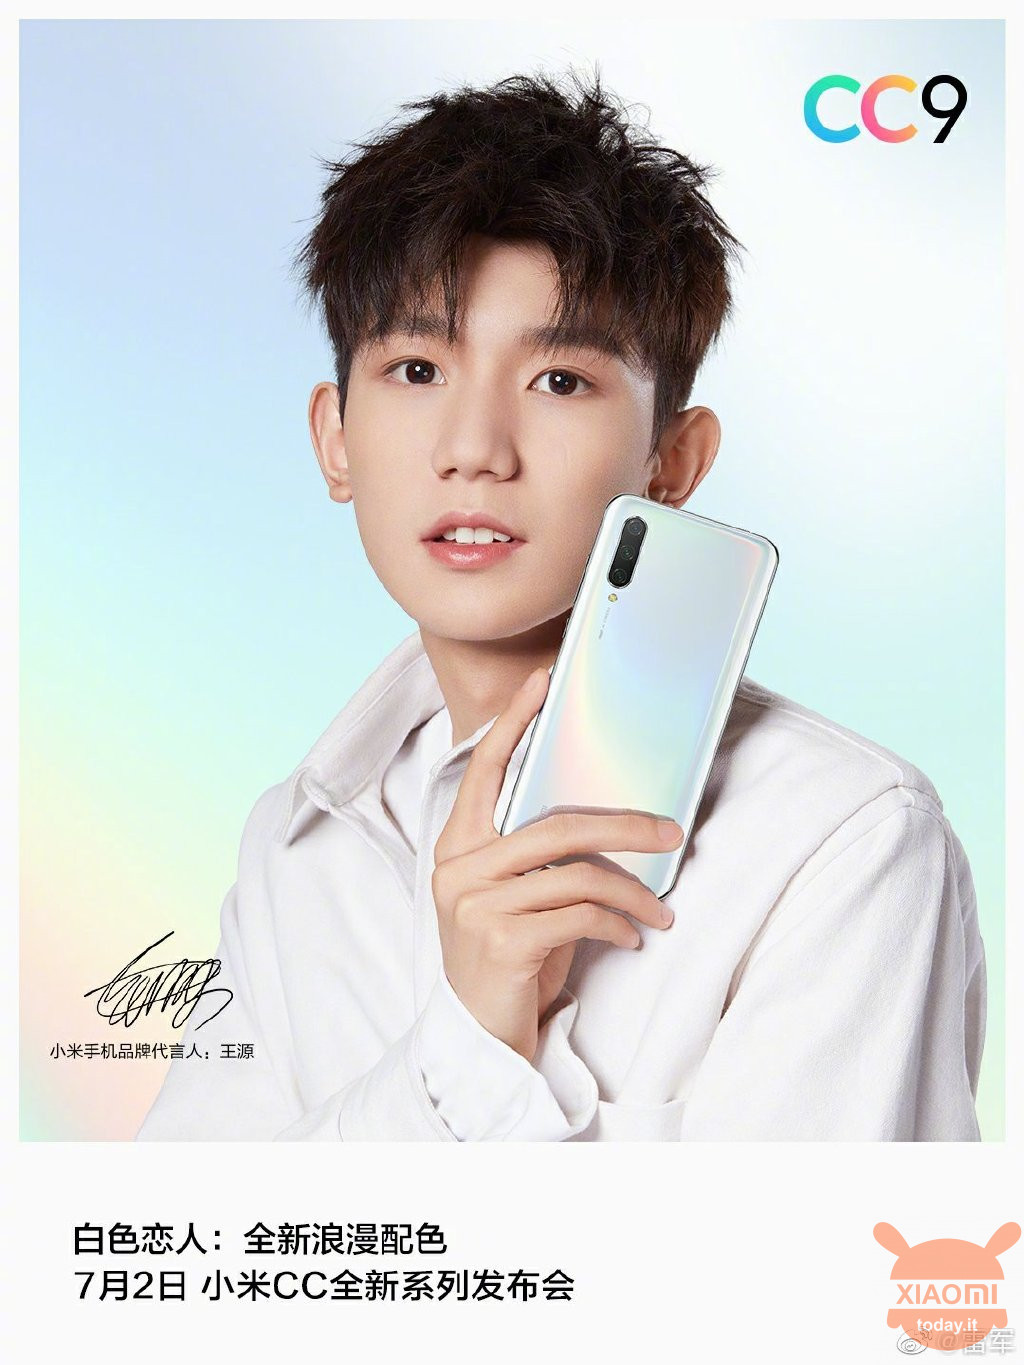 Xiaomi CC9 white lovers